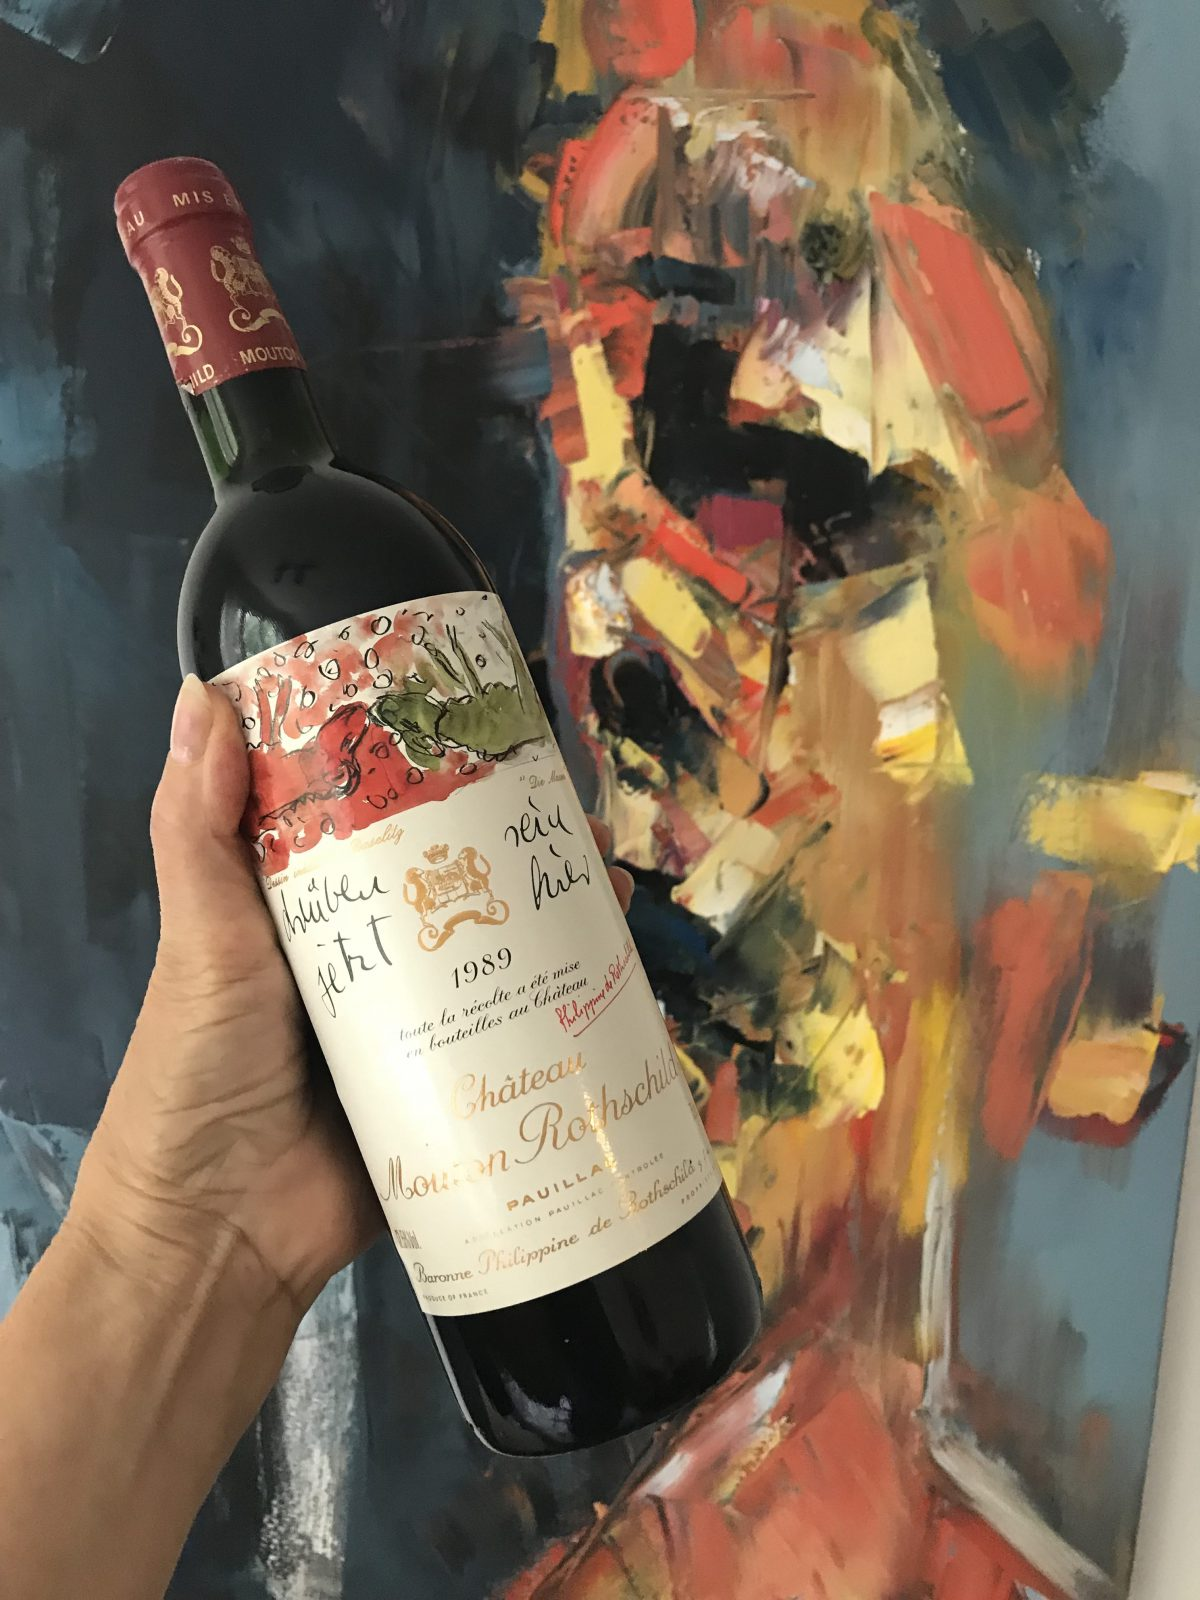 Wine Review: Chateau Mouton Rothschild 1989